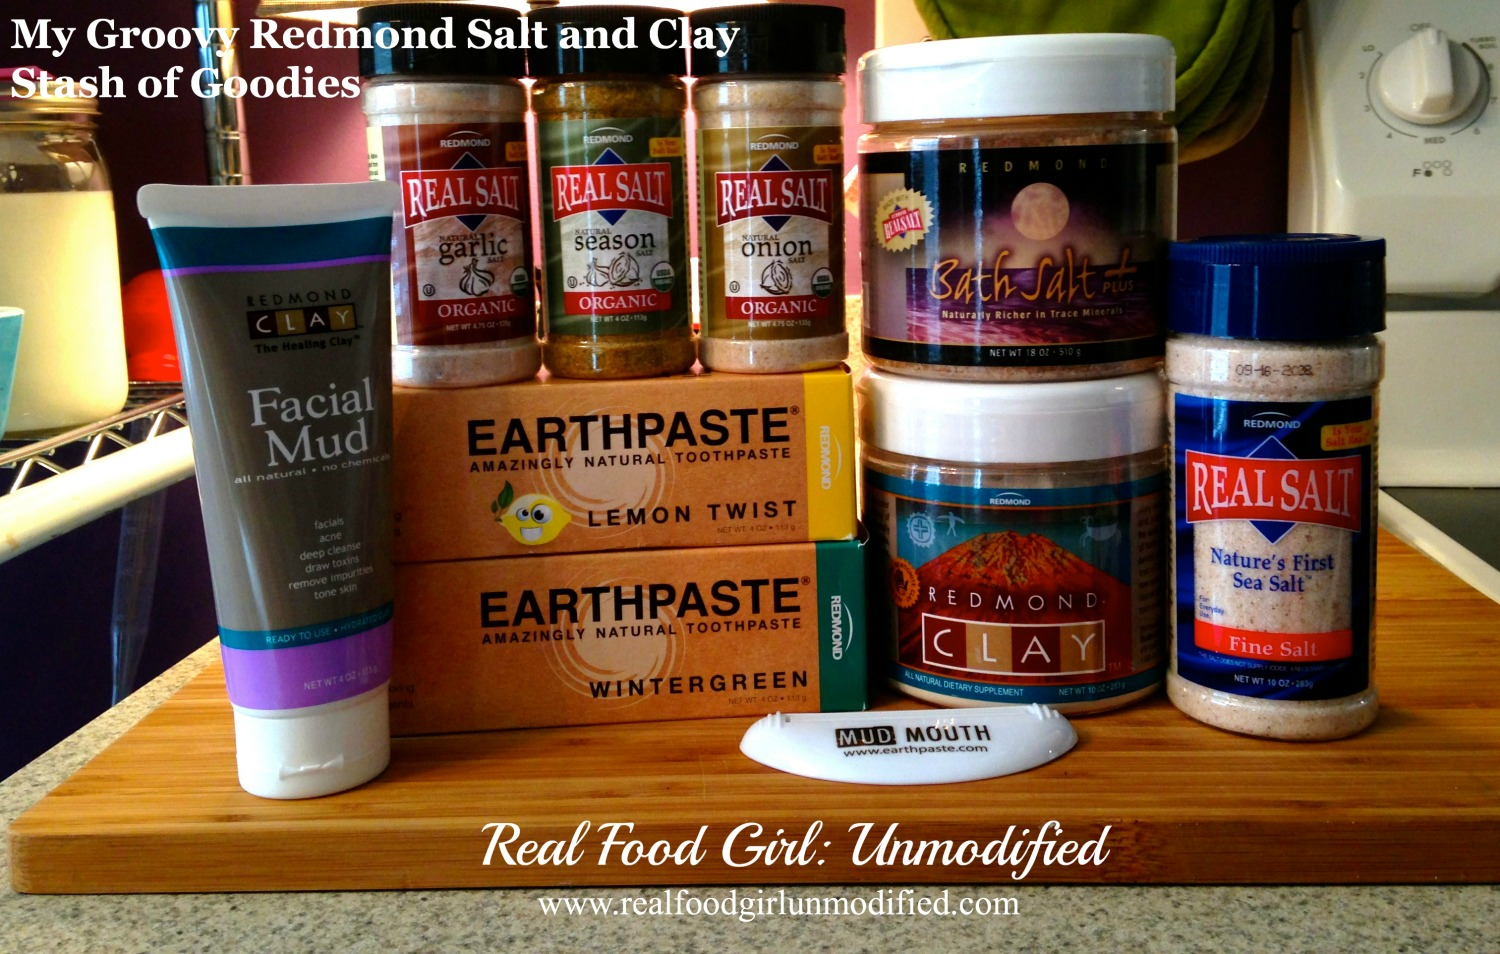 Real Food Girl talks about Redmond Trading Company products - Real Salt, bentonite Clay and Earthpaste to name a few